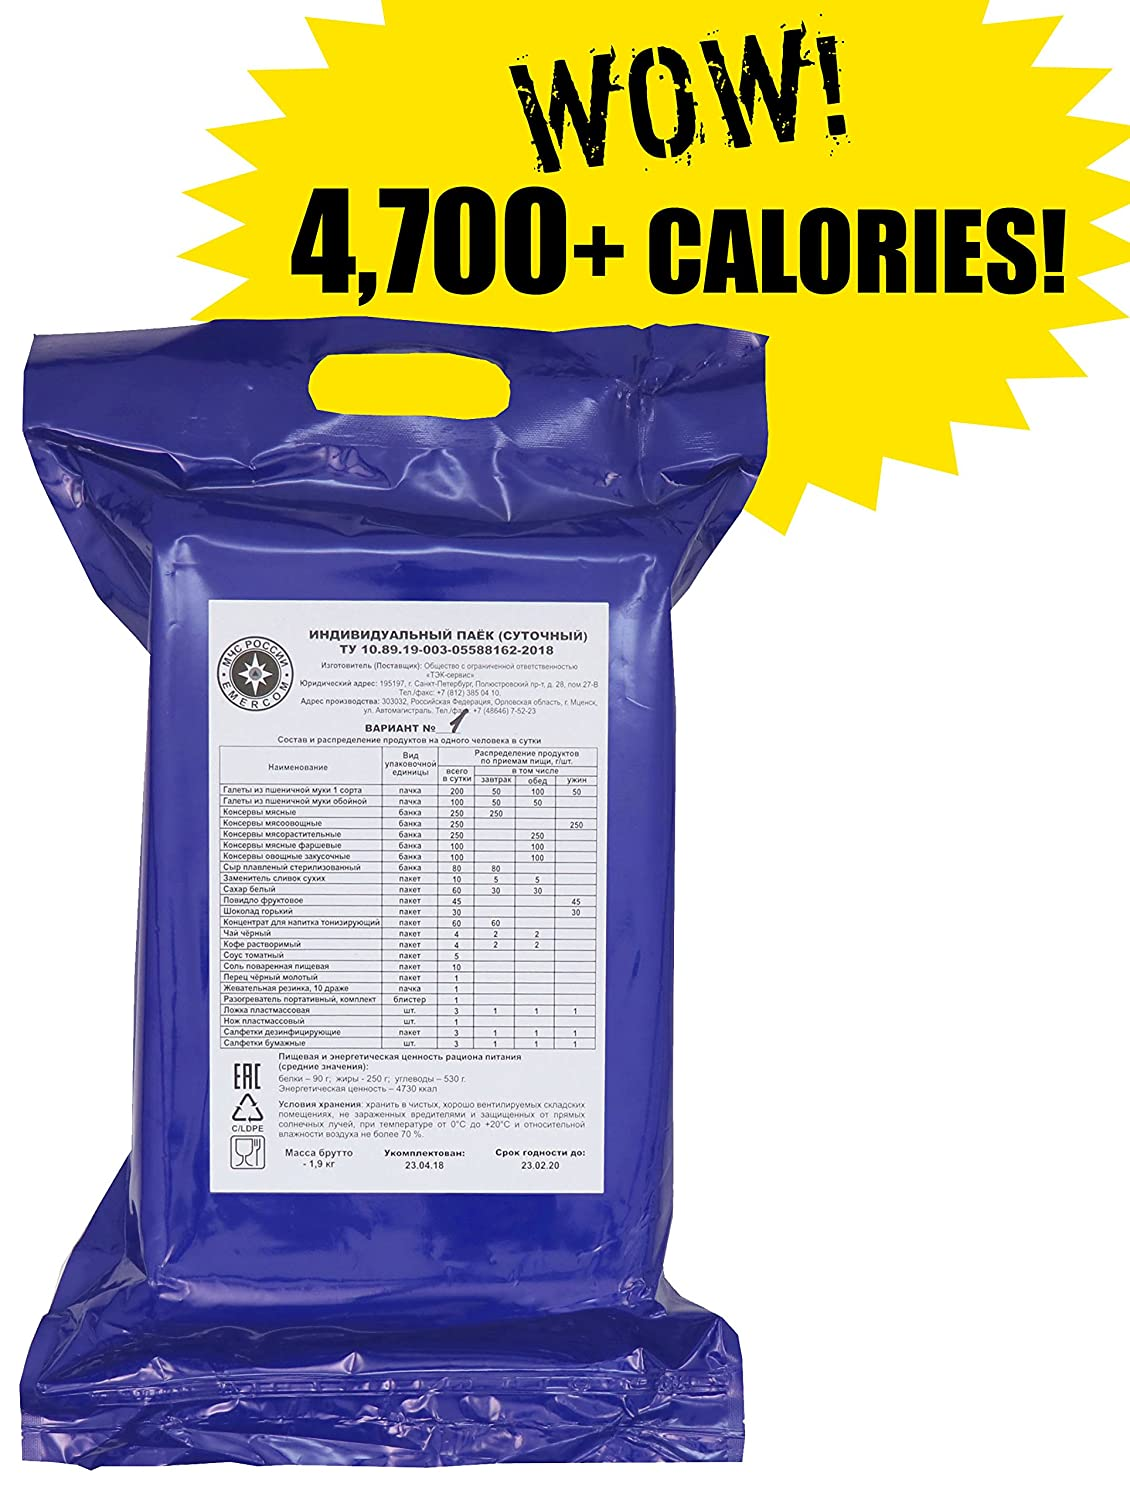 Russian MRE Emercom IRP Emergency Food Daily Pack Meals Ready-to-Eat Ration Exp. Date 2020